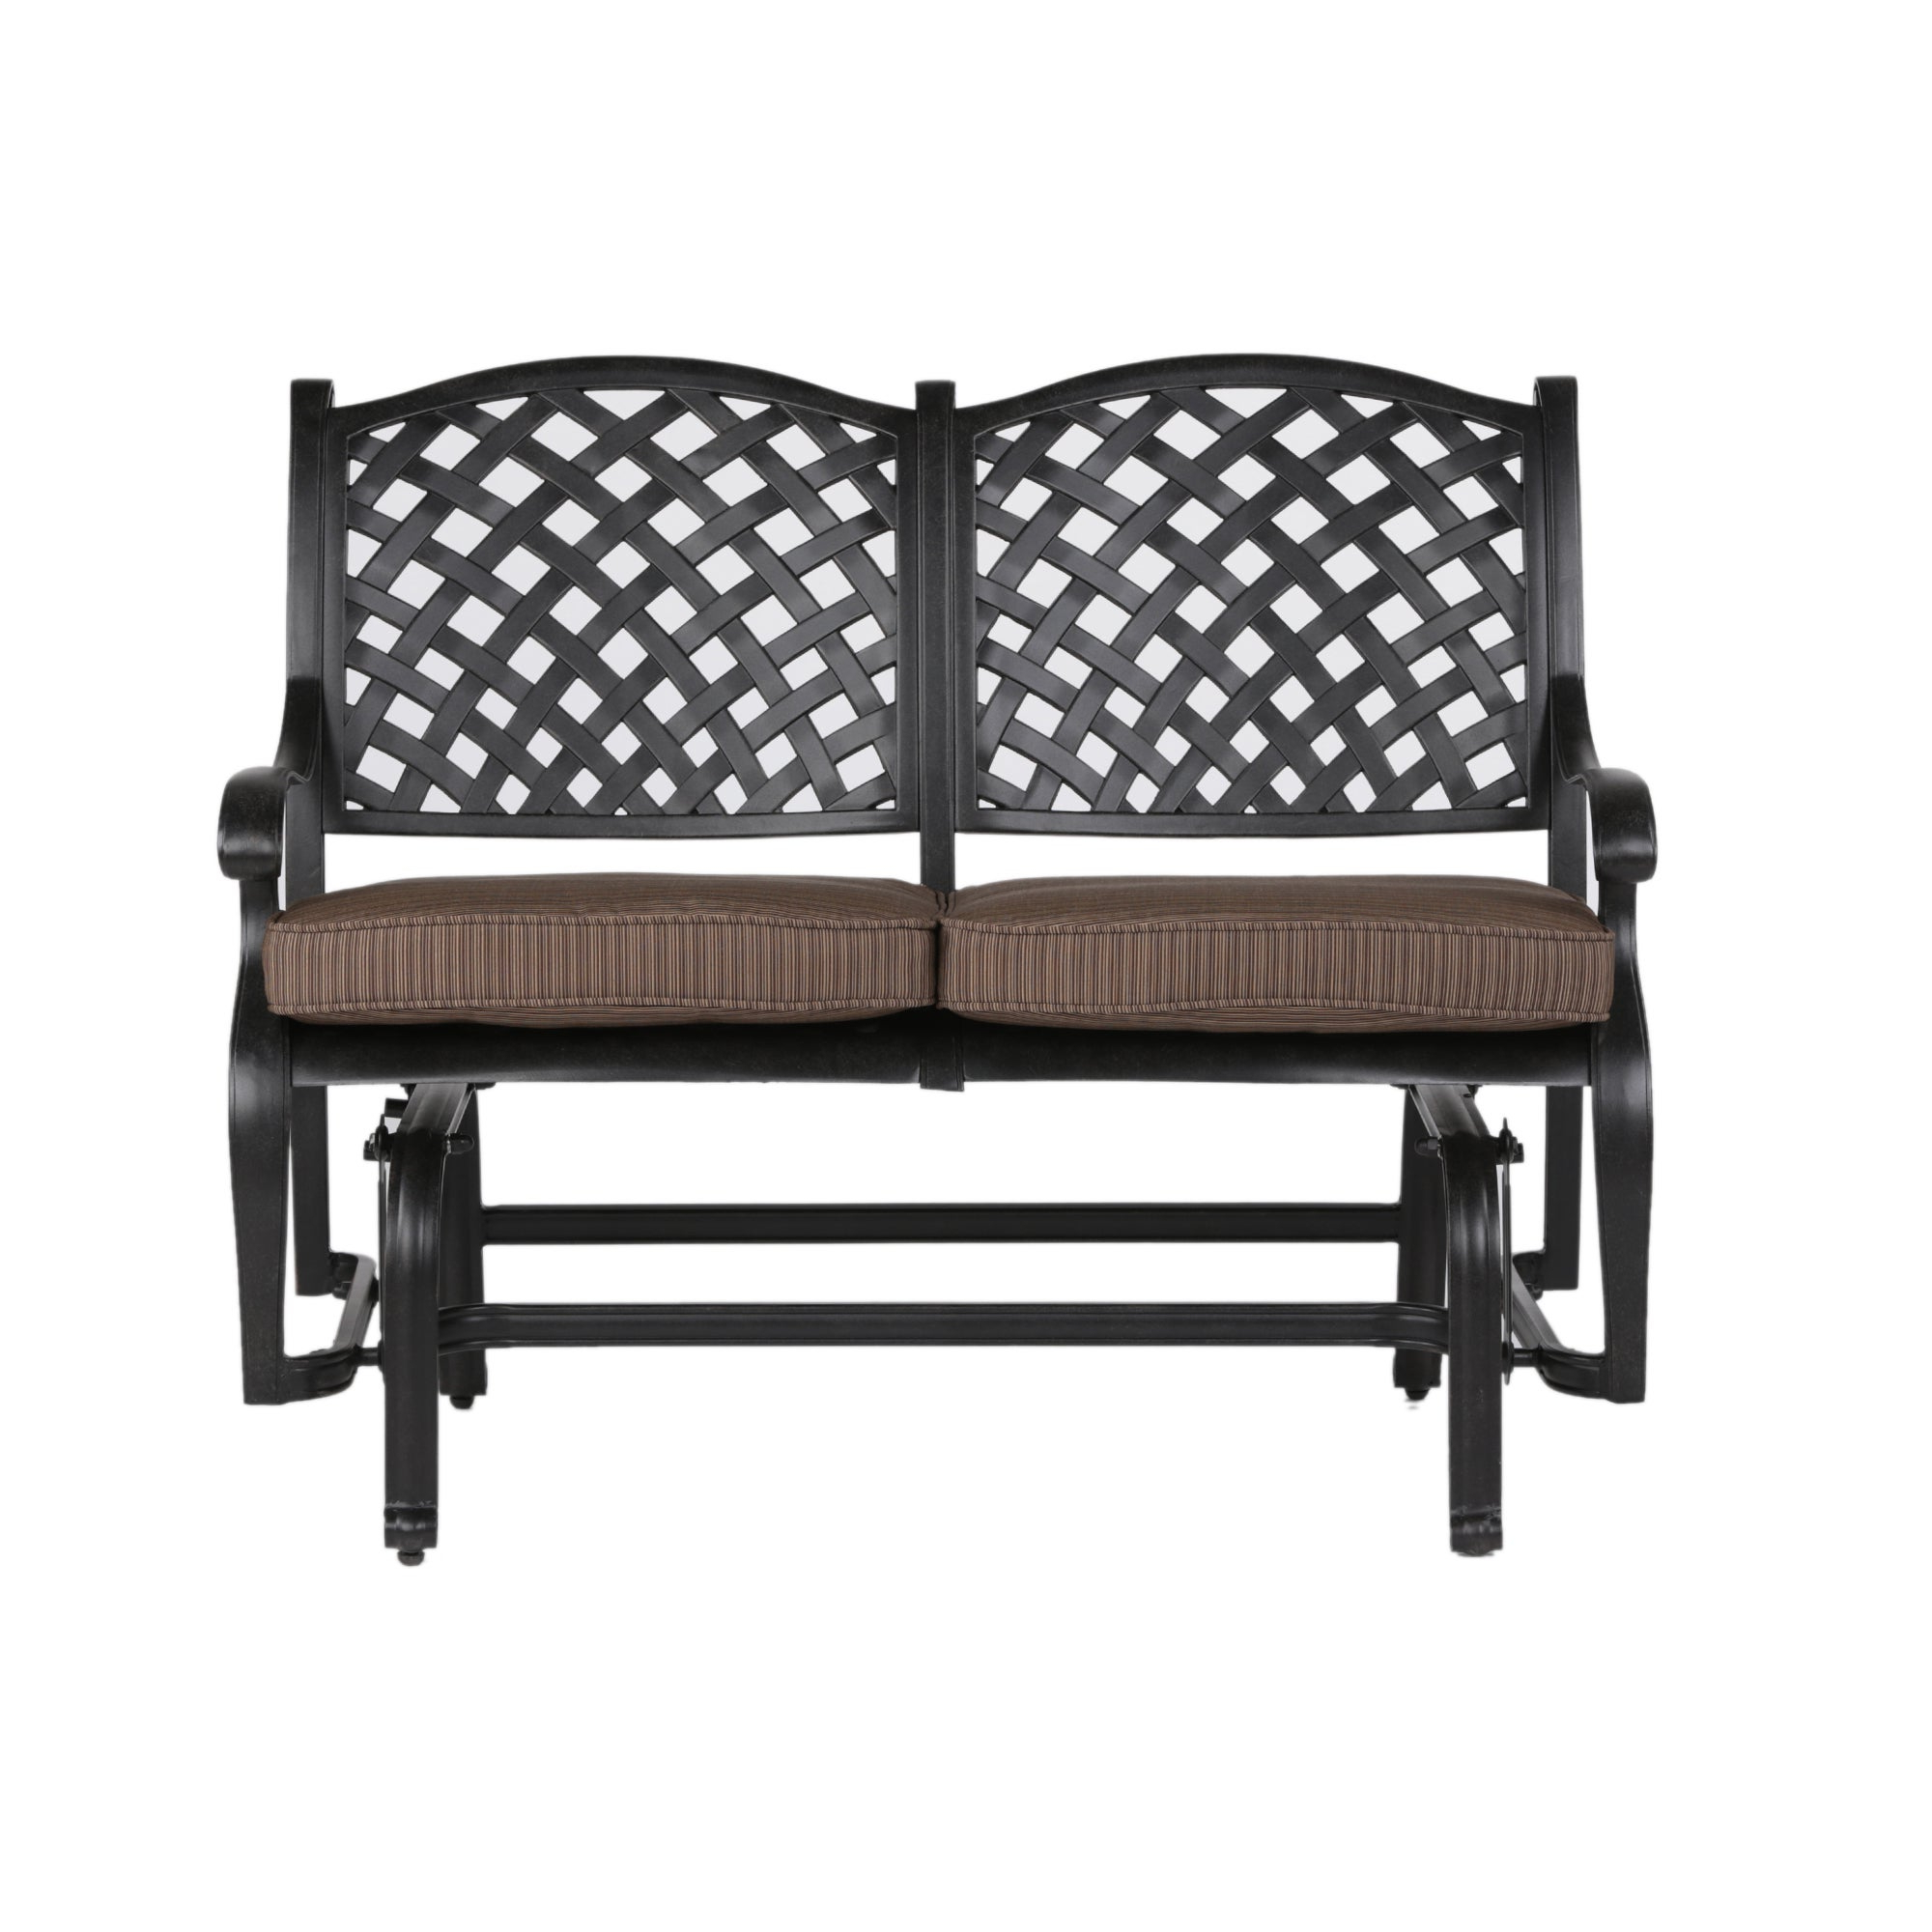 South Ponto Aluminum Bench Glider With Cushion Regarding 2020 Glider Benches With Cushion (View 29 of 30)